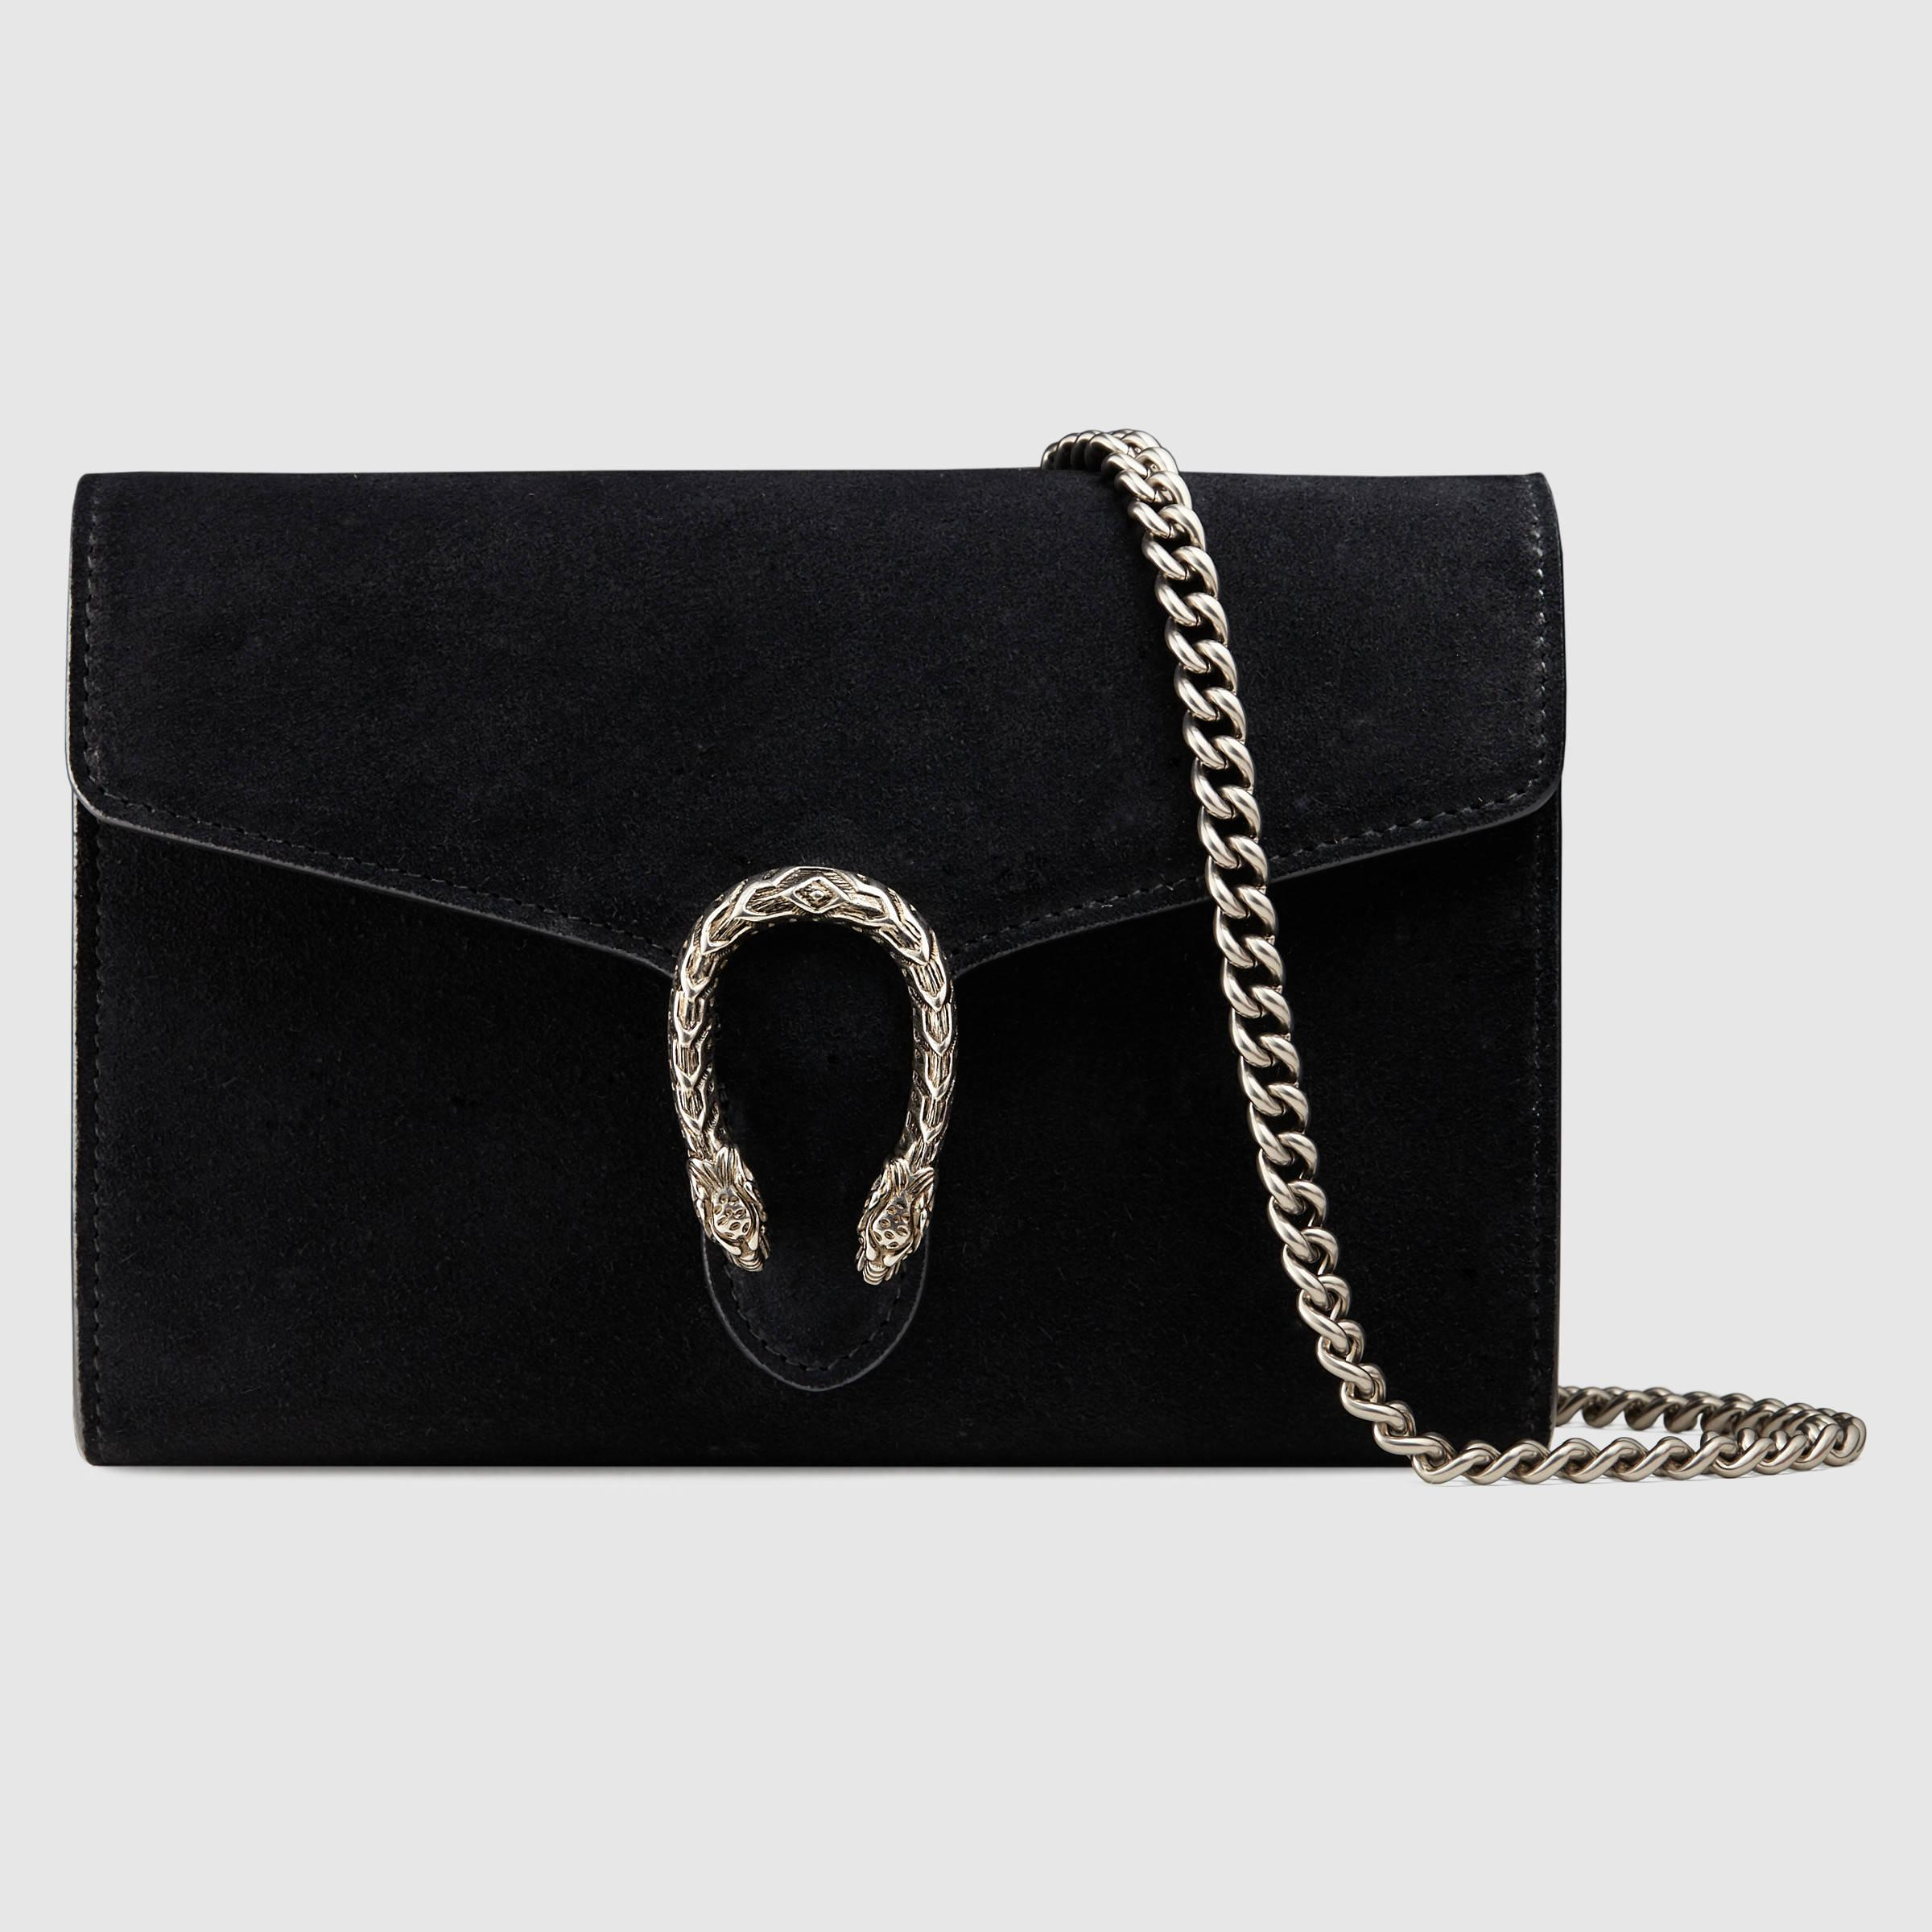 gucci dionysus suede mini chain shoulder bag in black lyst. Black Bedroom Furniture Sets. Home Design Ideas